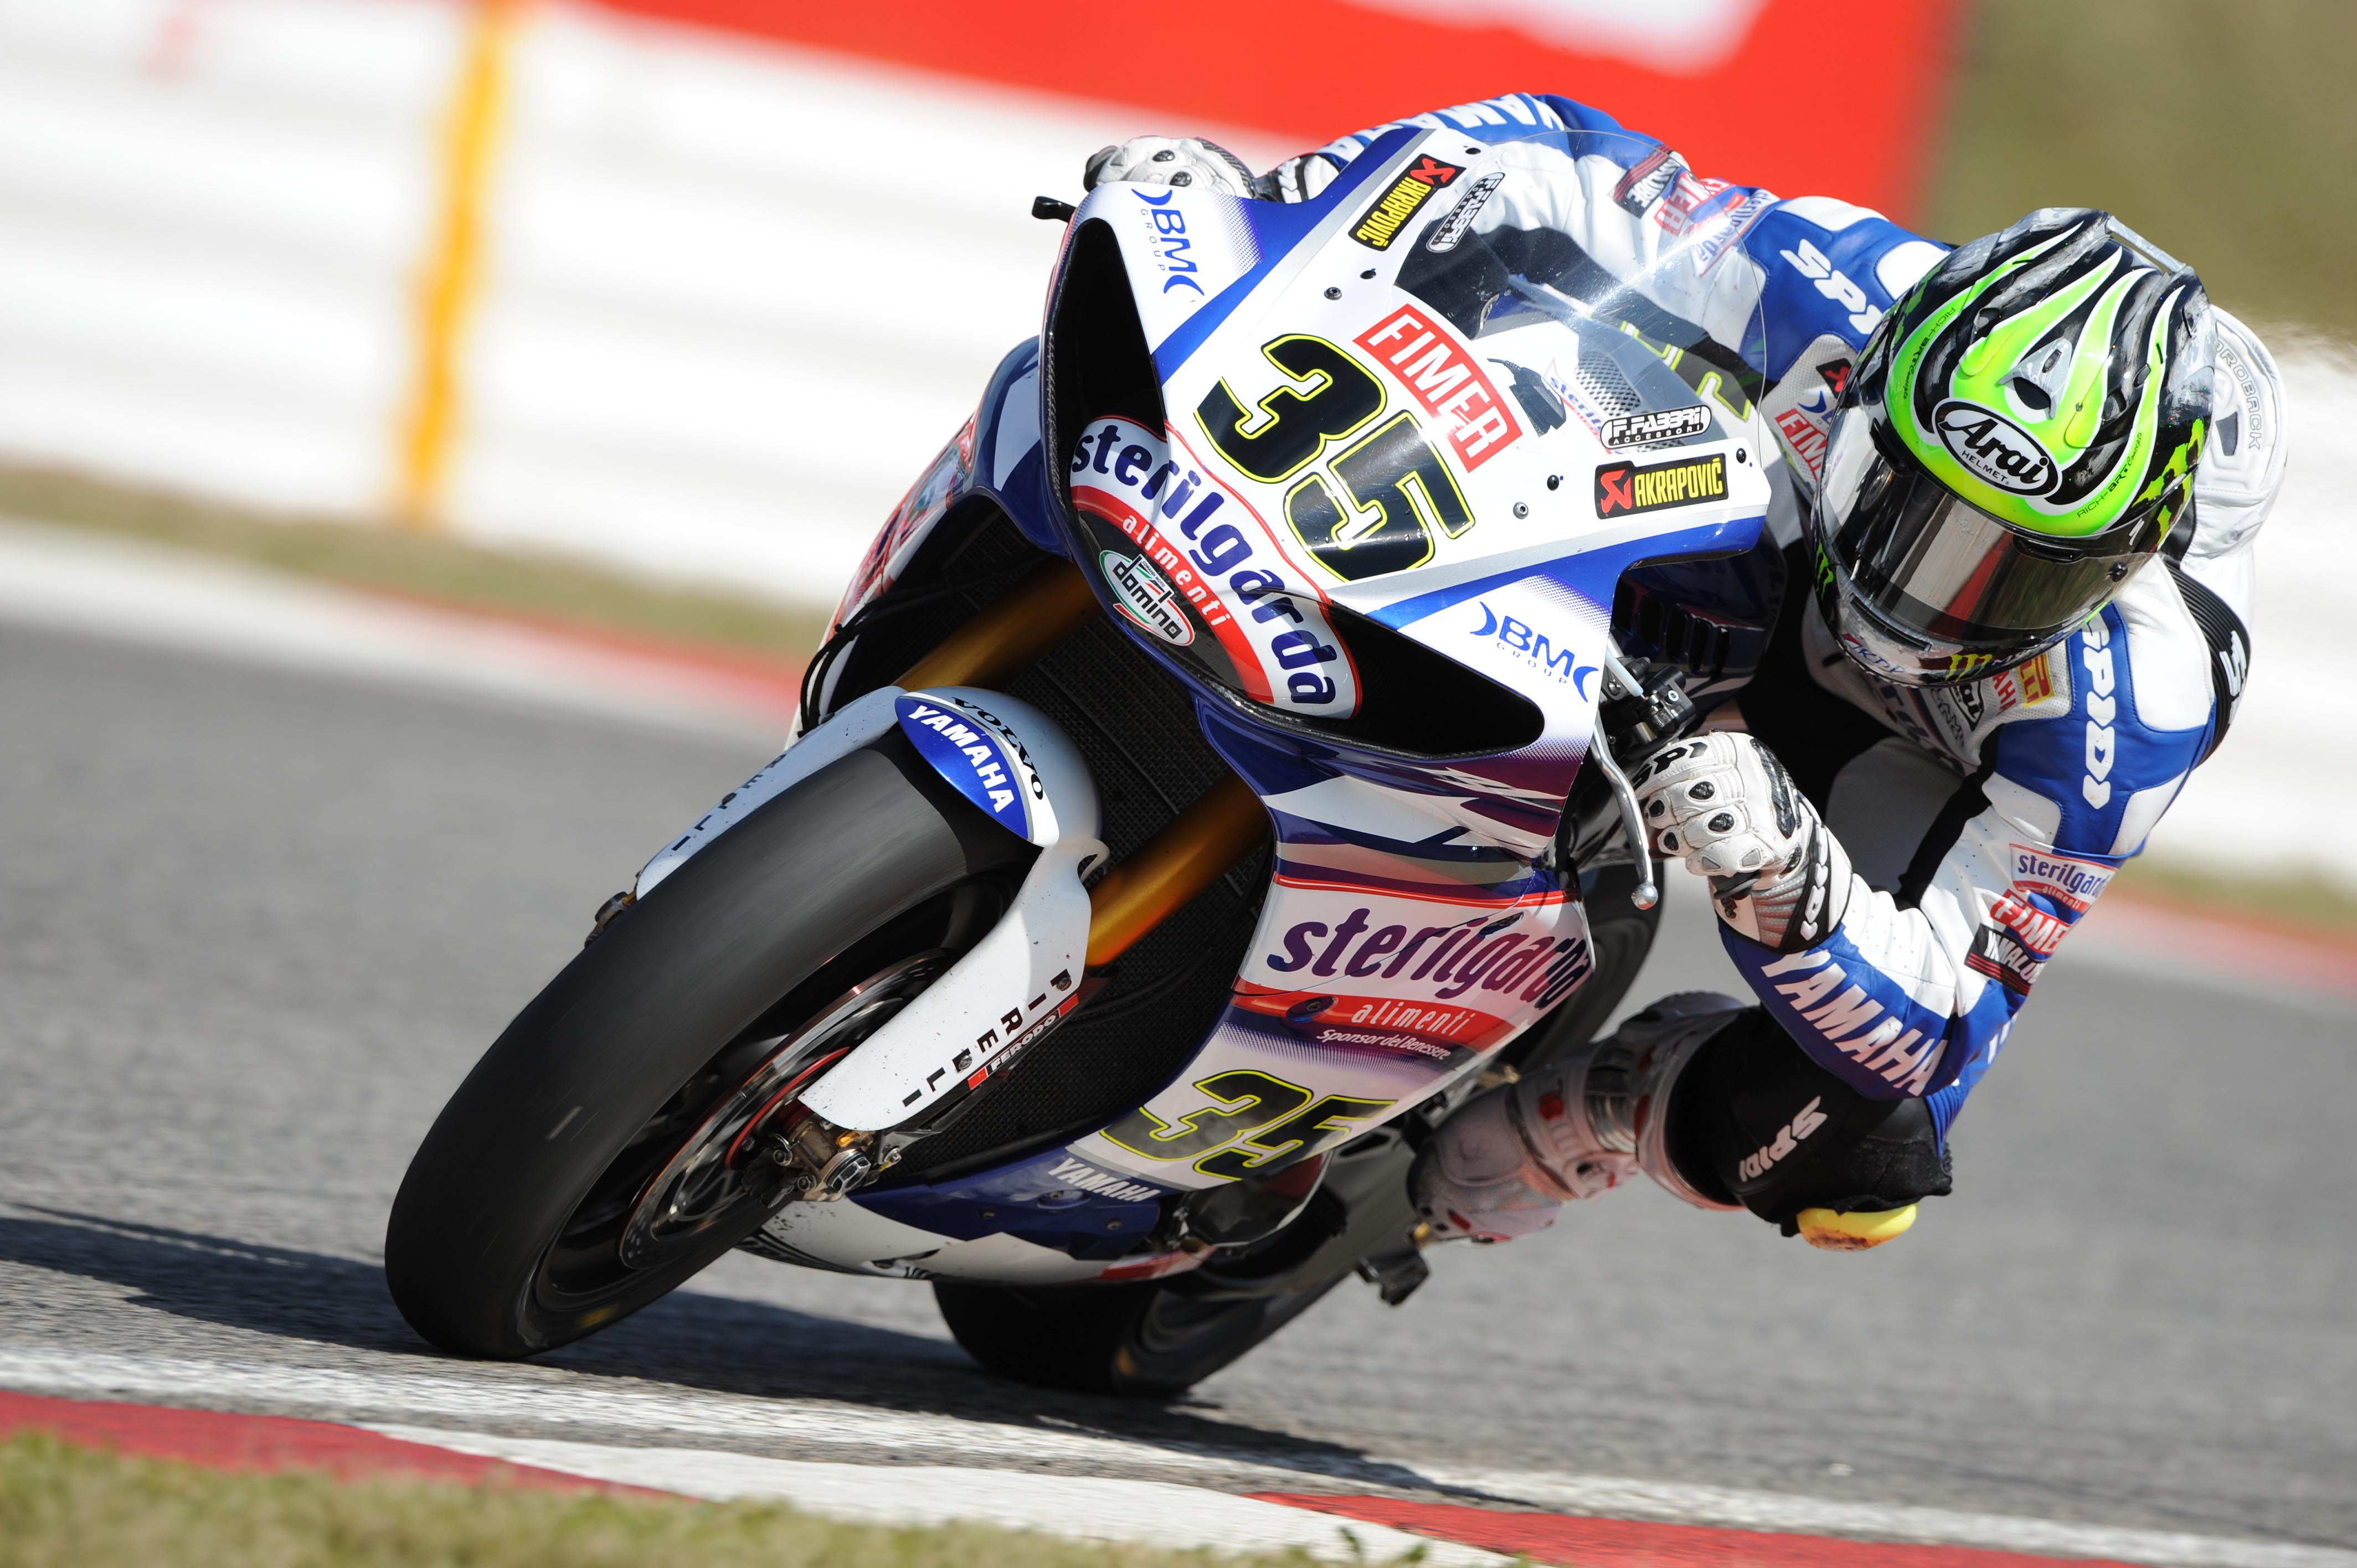 WSB Kyalami Superpole with a Yamaha one-two from Crutchlow and Toseland